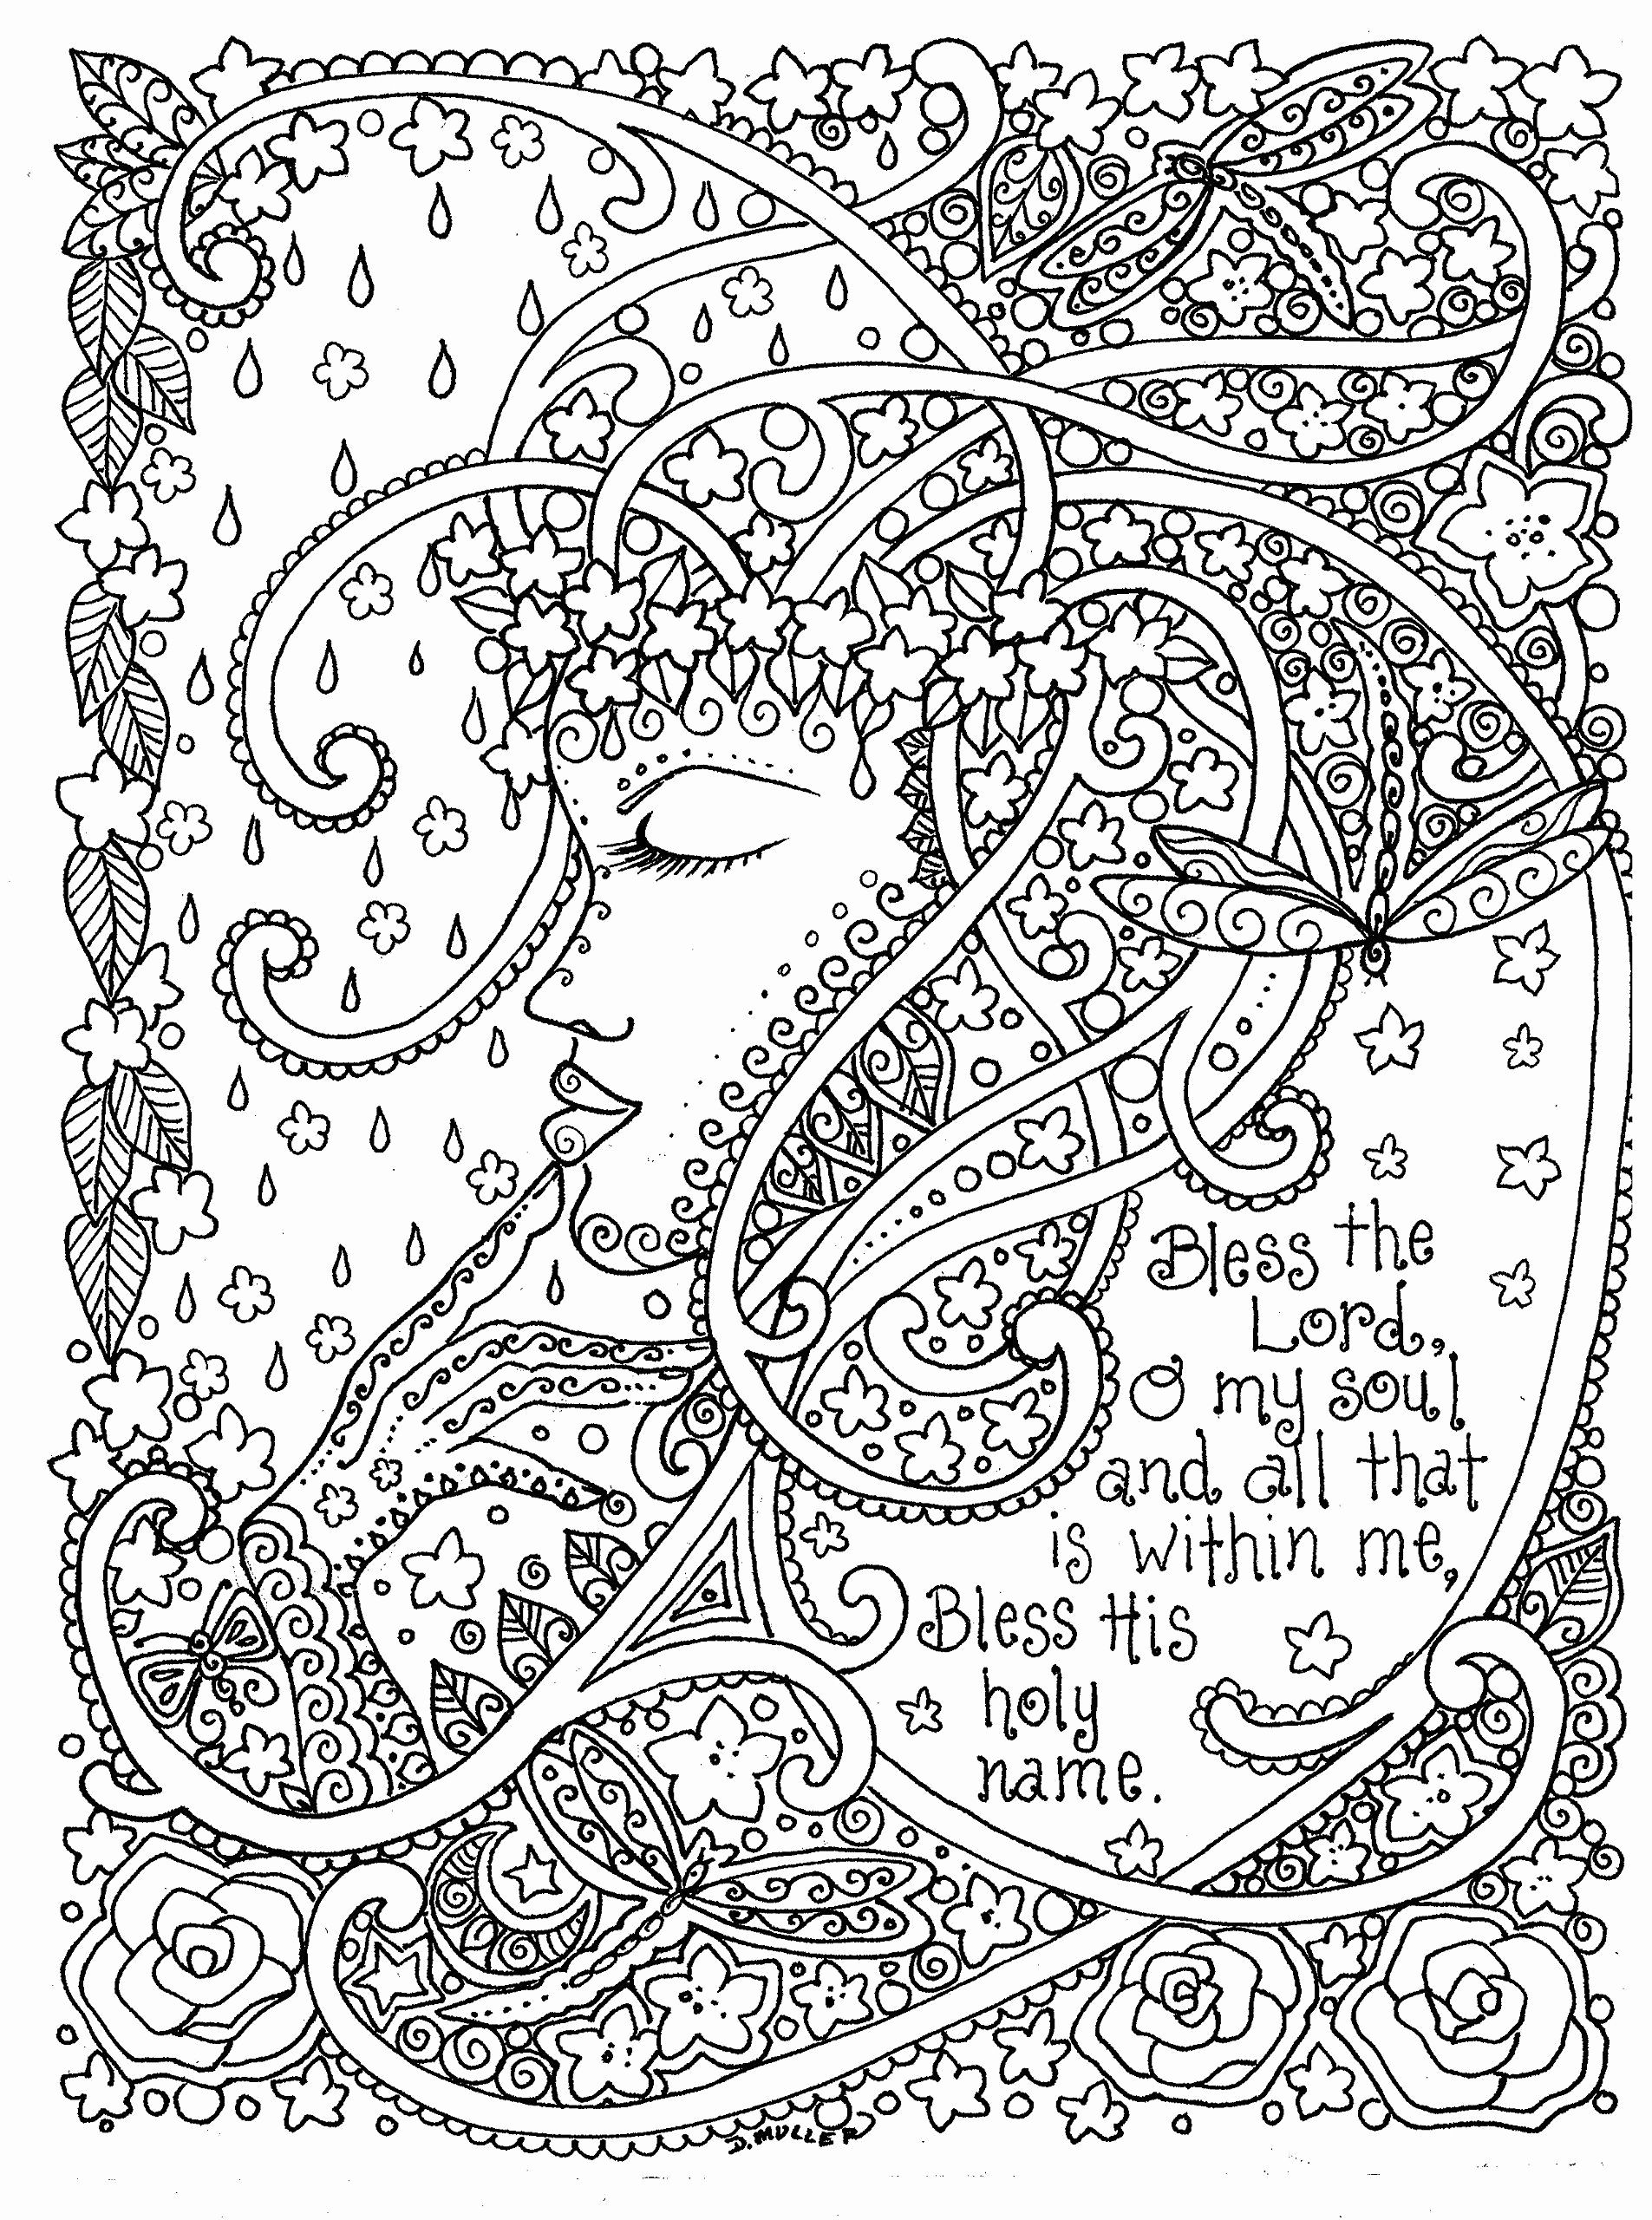 Color By Number Christian Coloring Sheets Elegant Pin On Coloring Pages Christian Coloring Bible Coloring Pages Coloring Books